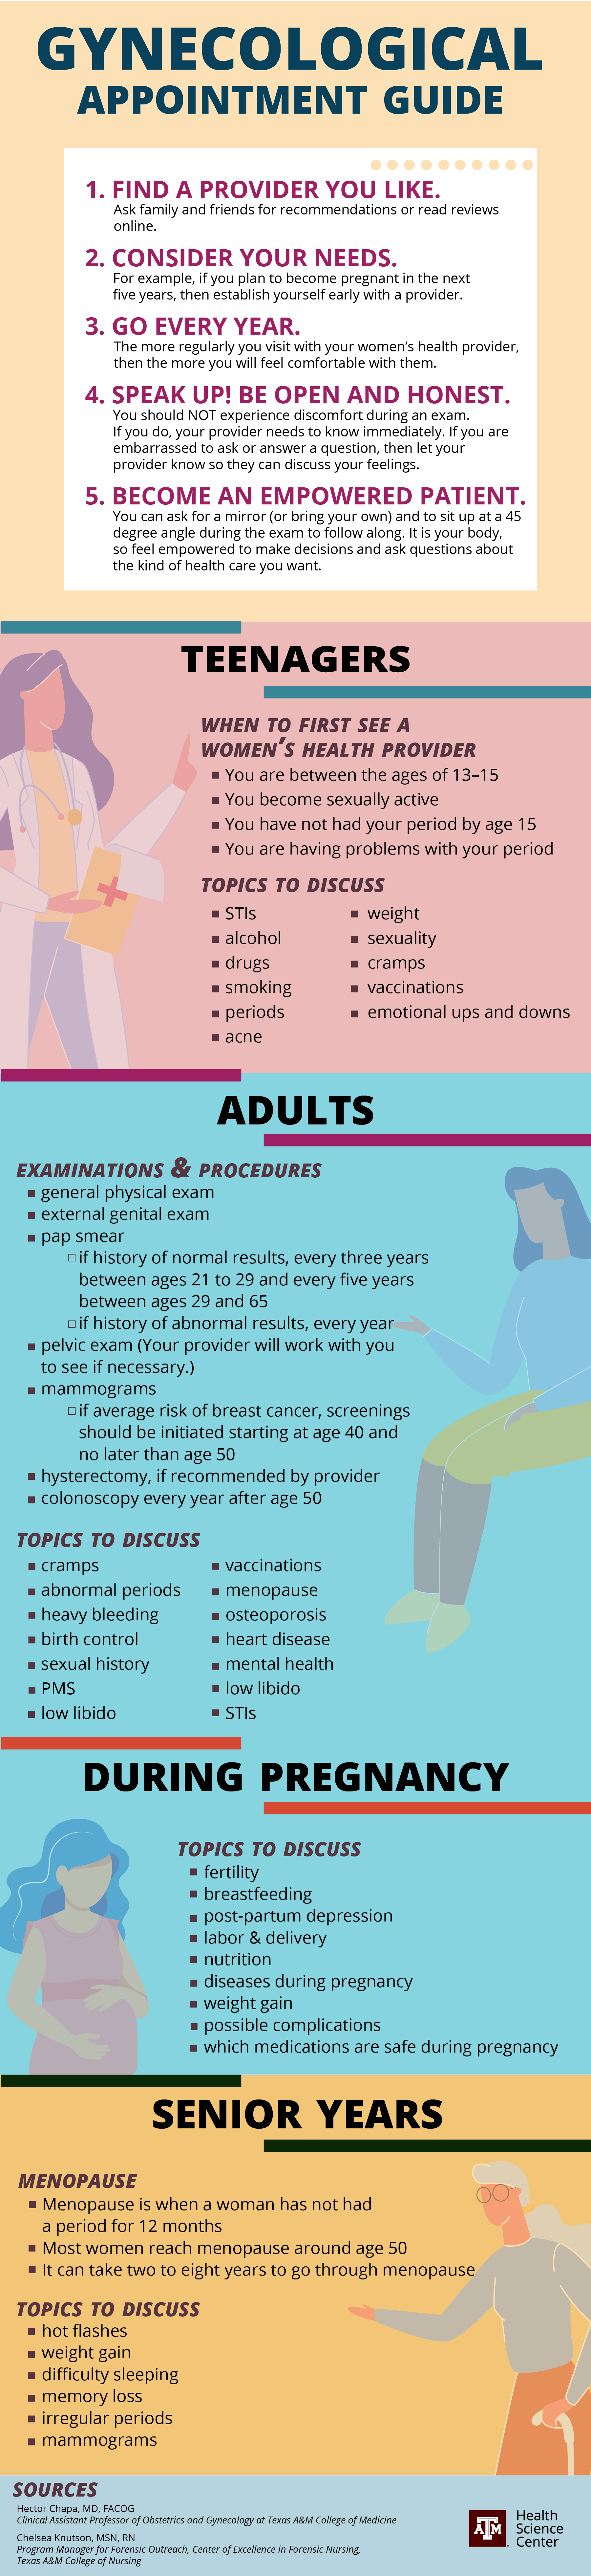 An infographic listing best practices patients should consider prior to visiting their women's health care provider